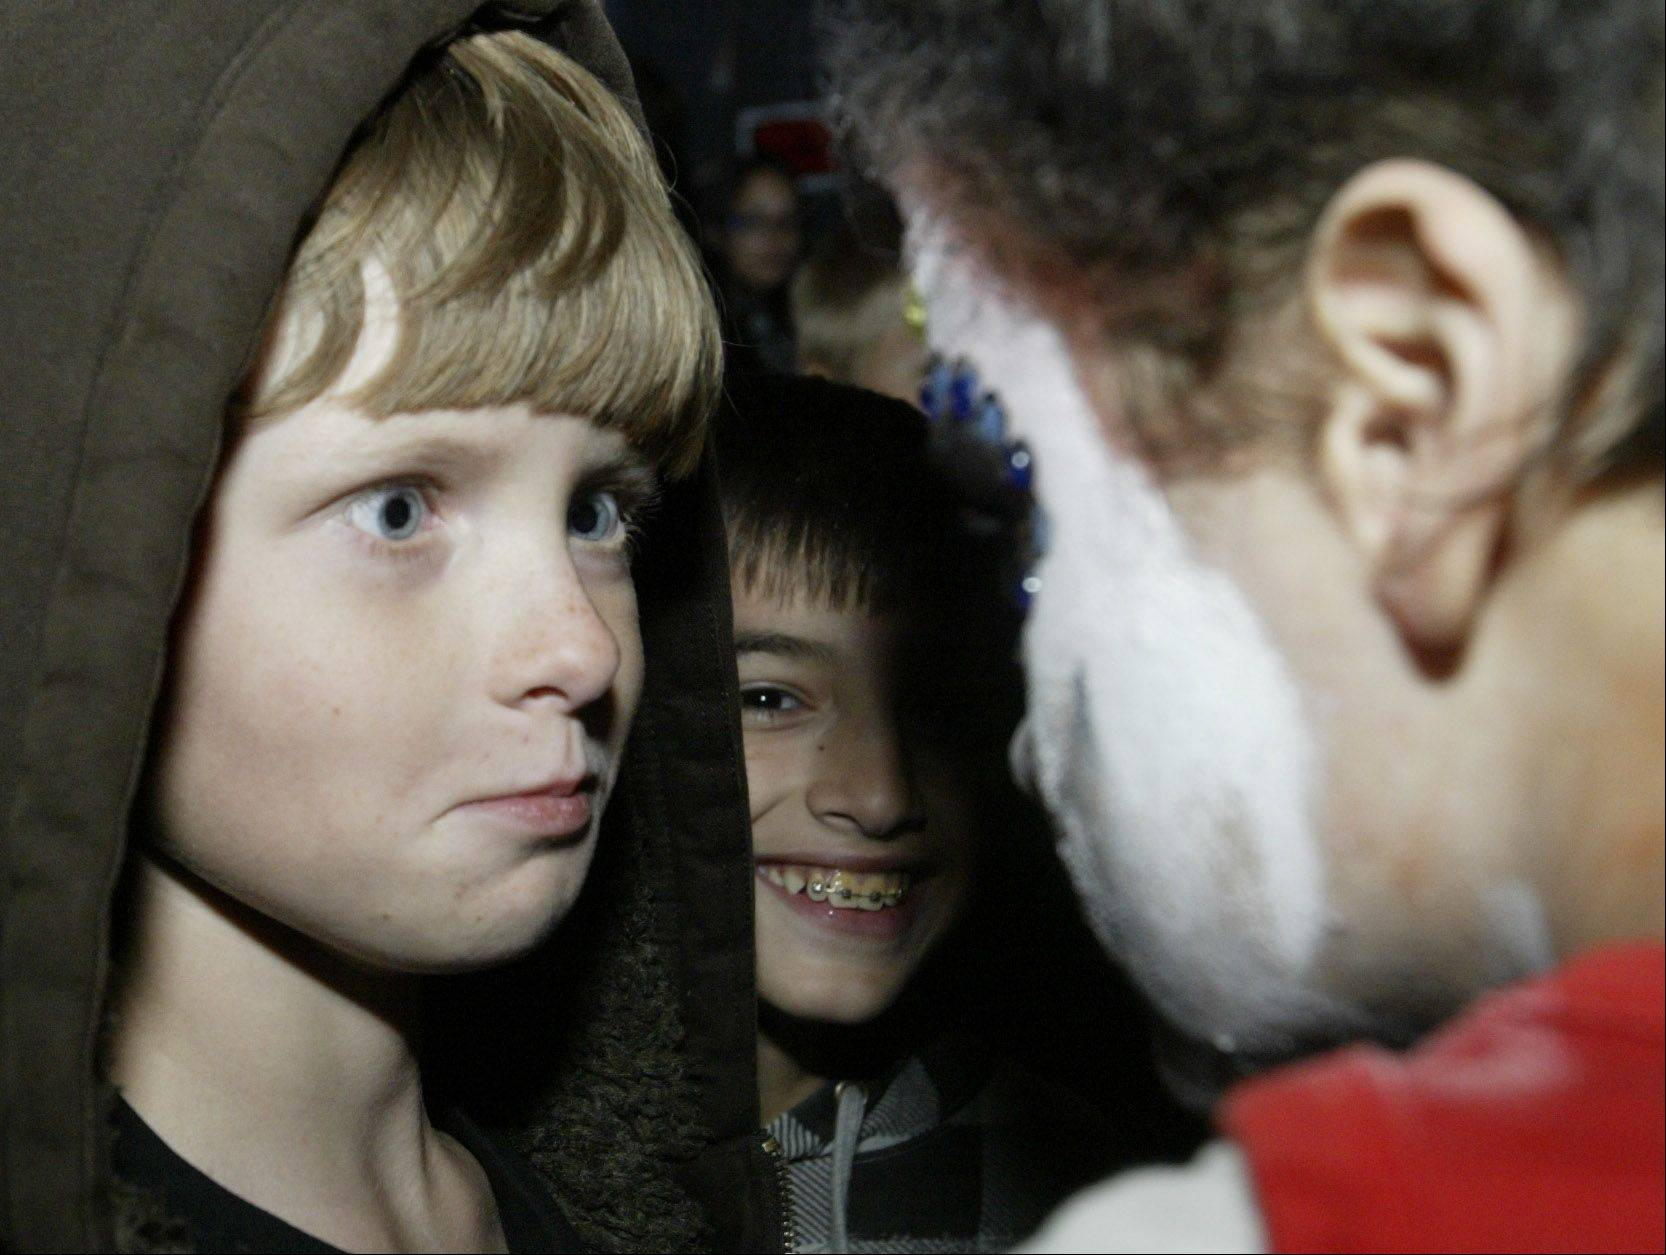 Keith Hurley, 11, of Pingree Grove stares at a zombie at the Burden Acres Haunted Hike Friday in Elgin. The haunted hike is offered by Three Fires Council Boy Scouts.